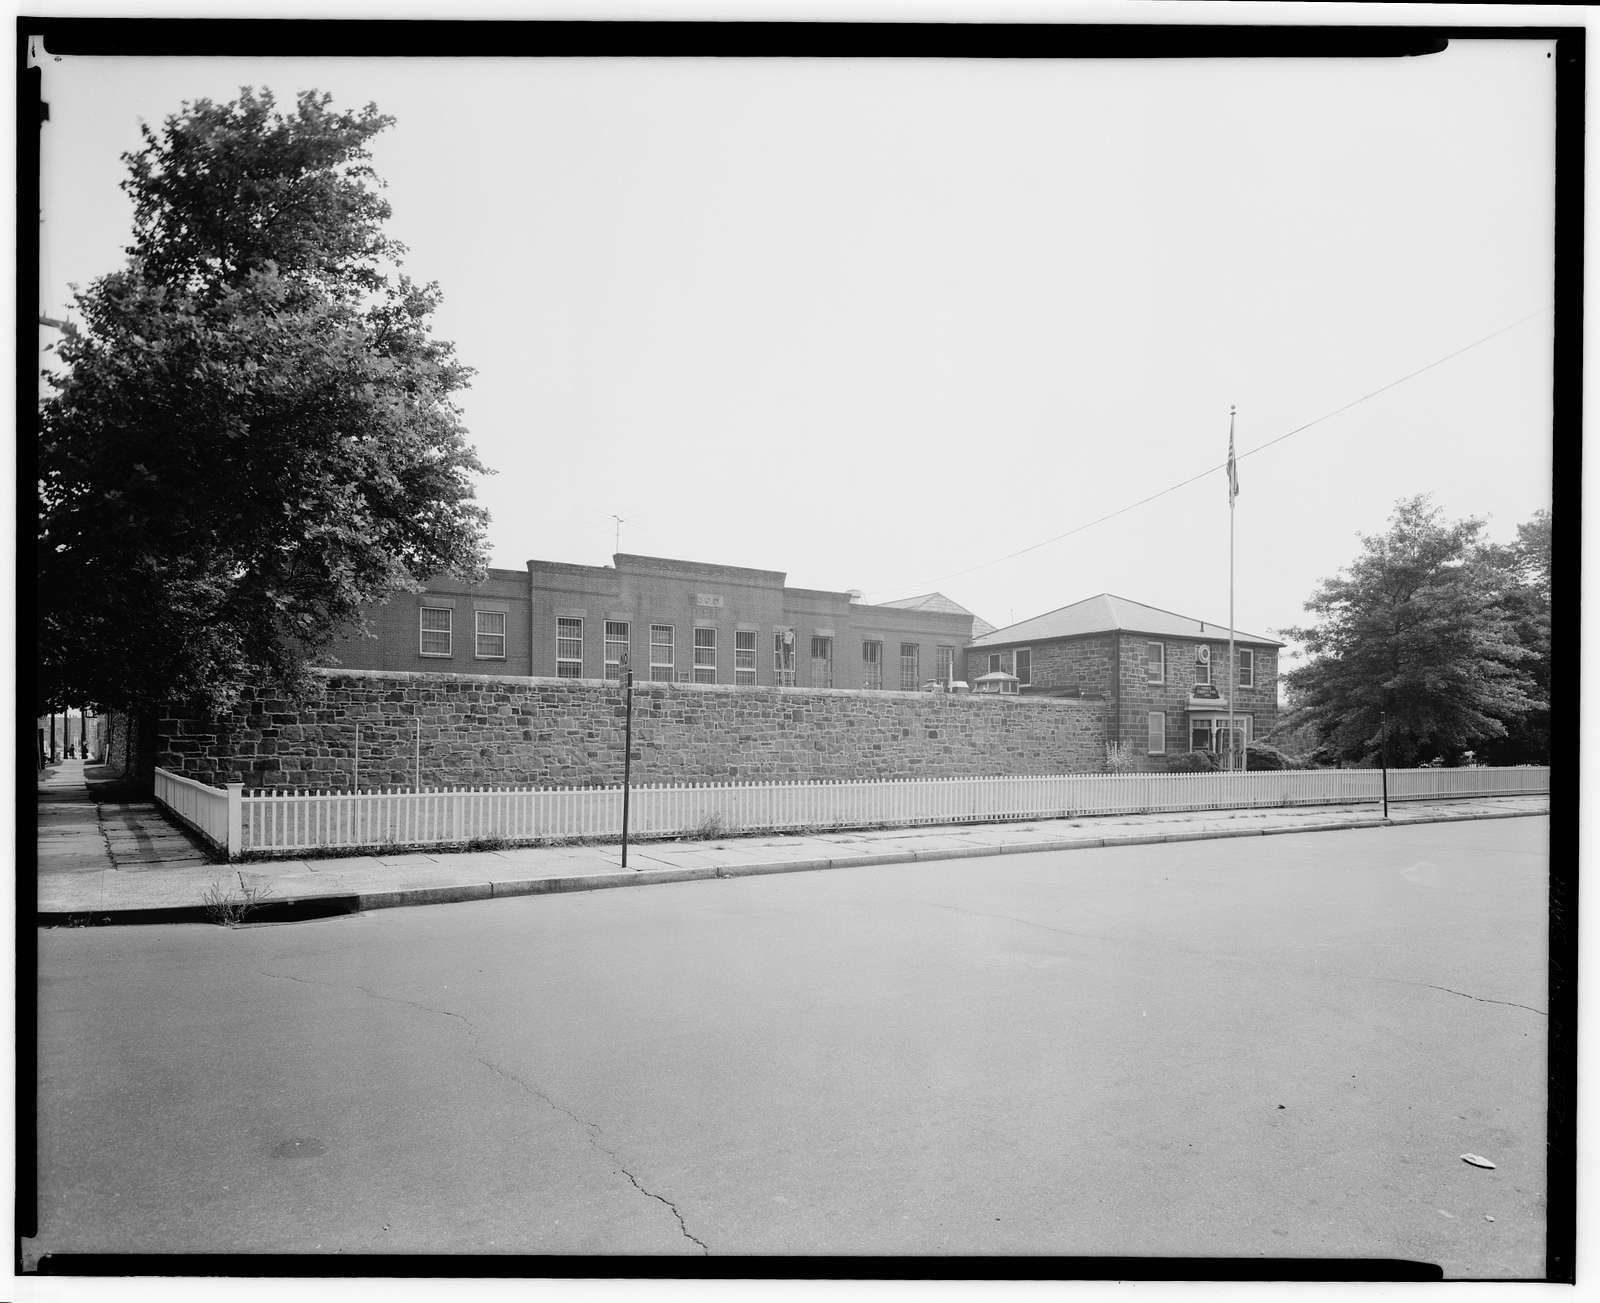 Essex County Jail, Newark, New & Wilsey Streets, Newark, Essex County, NJ